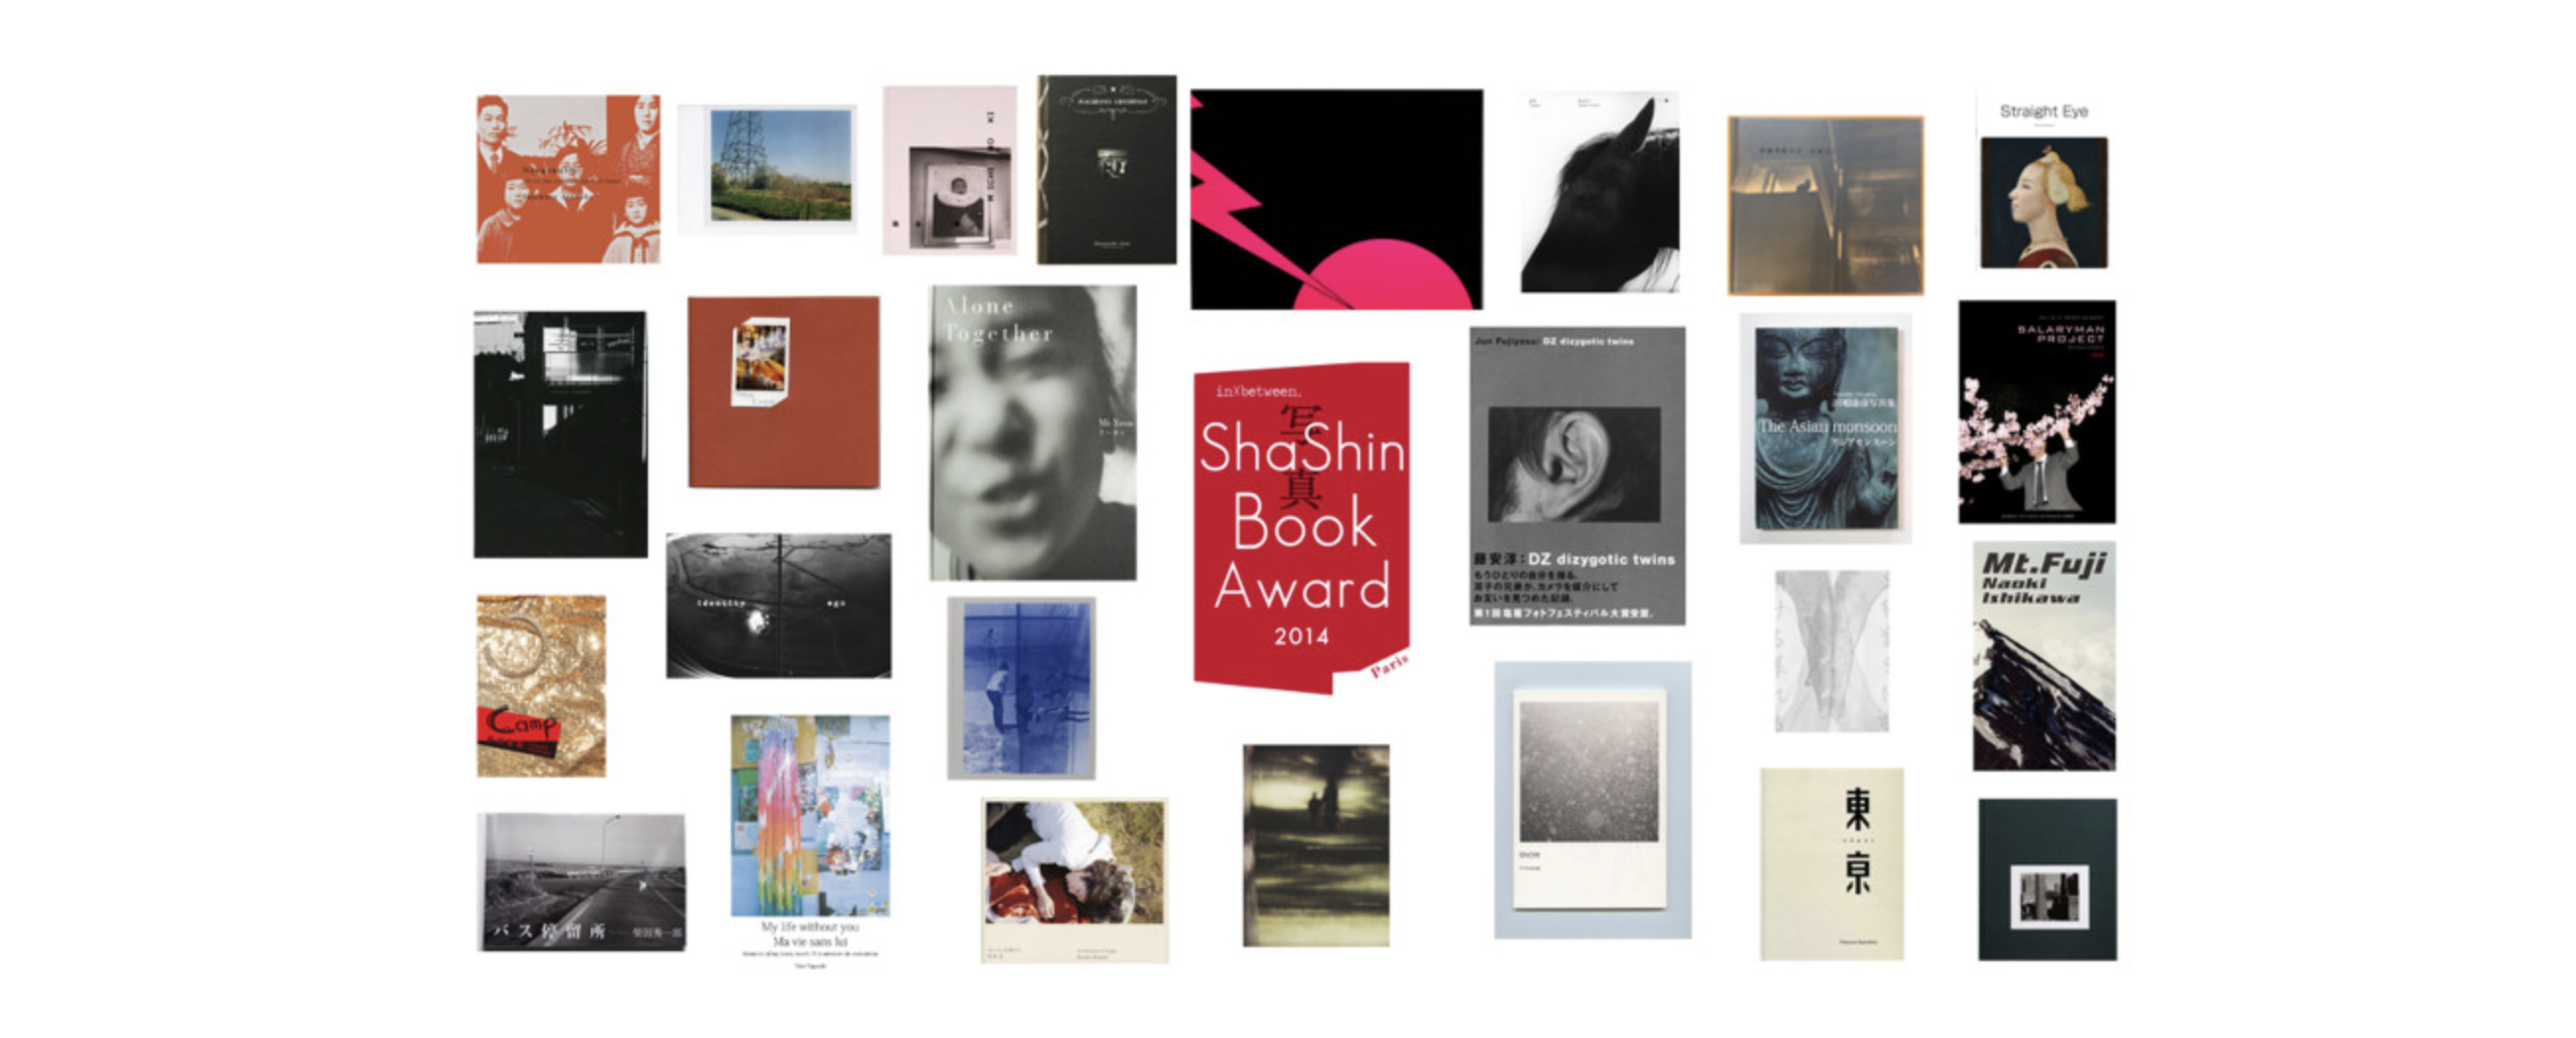 Rbooks 2014 archive